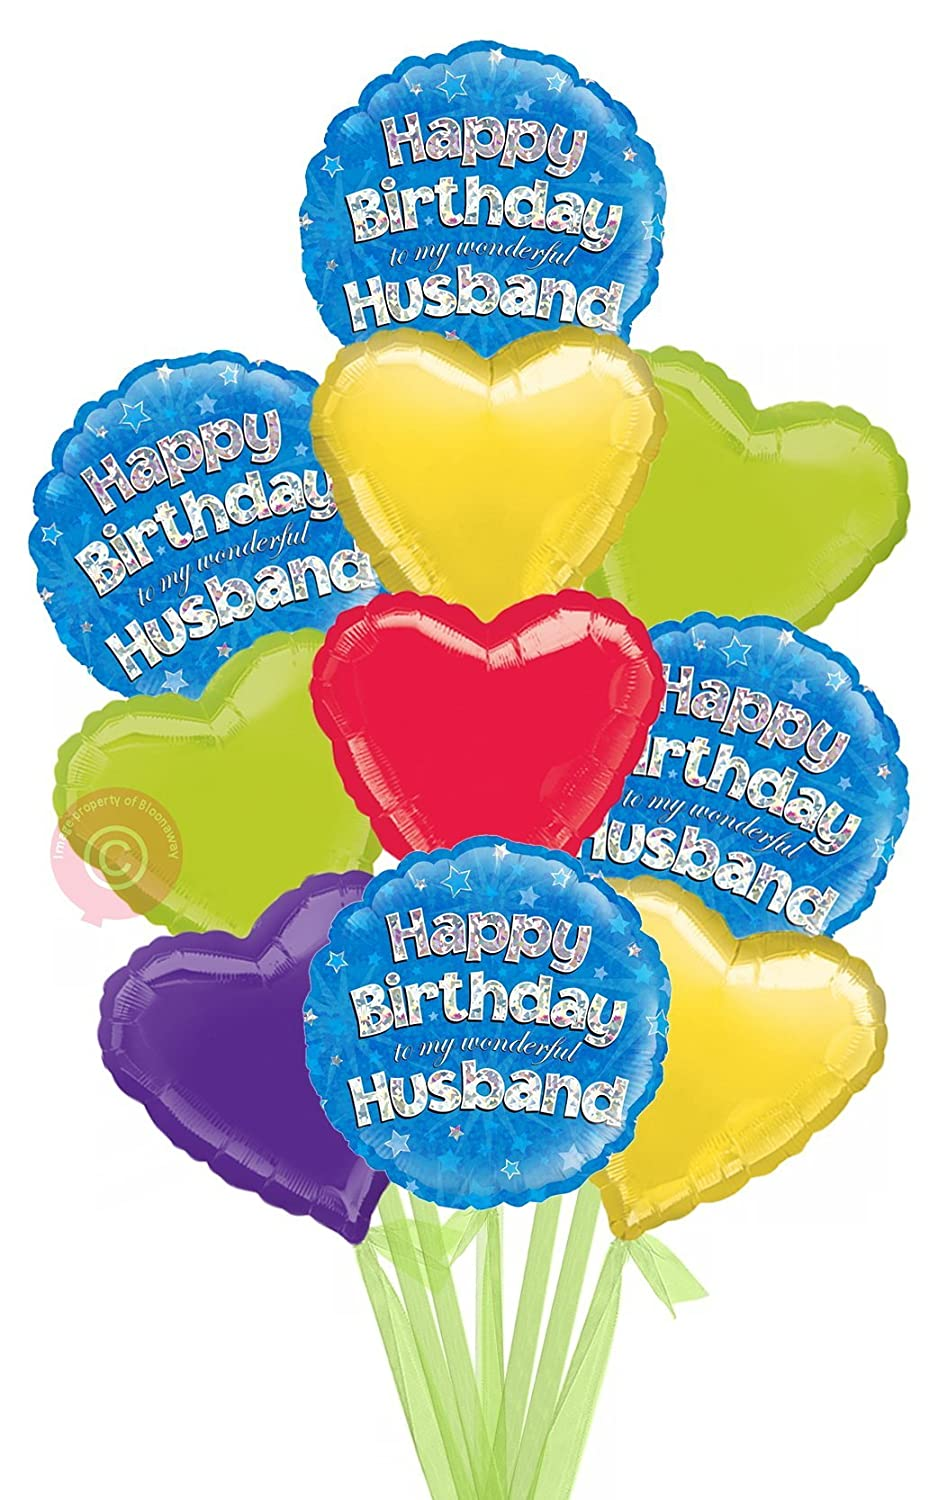 Happy Birthday Husband Holographic